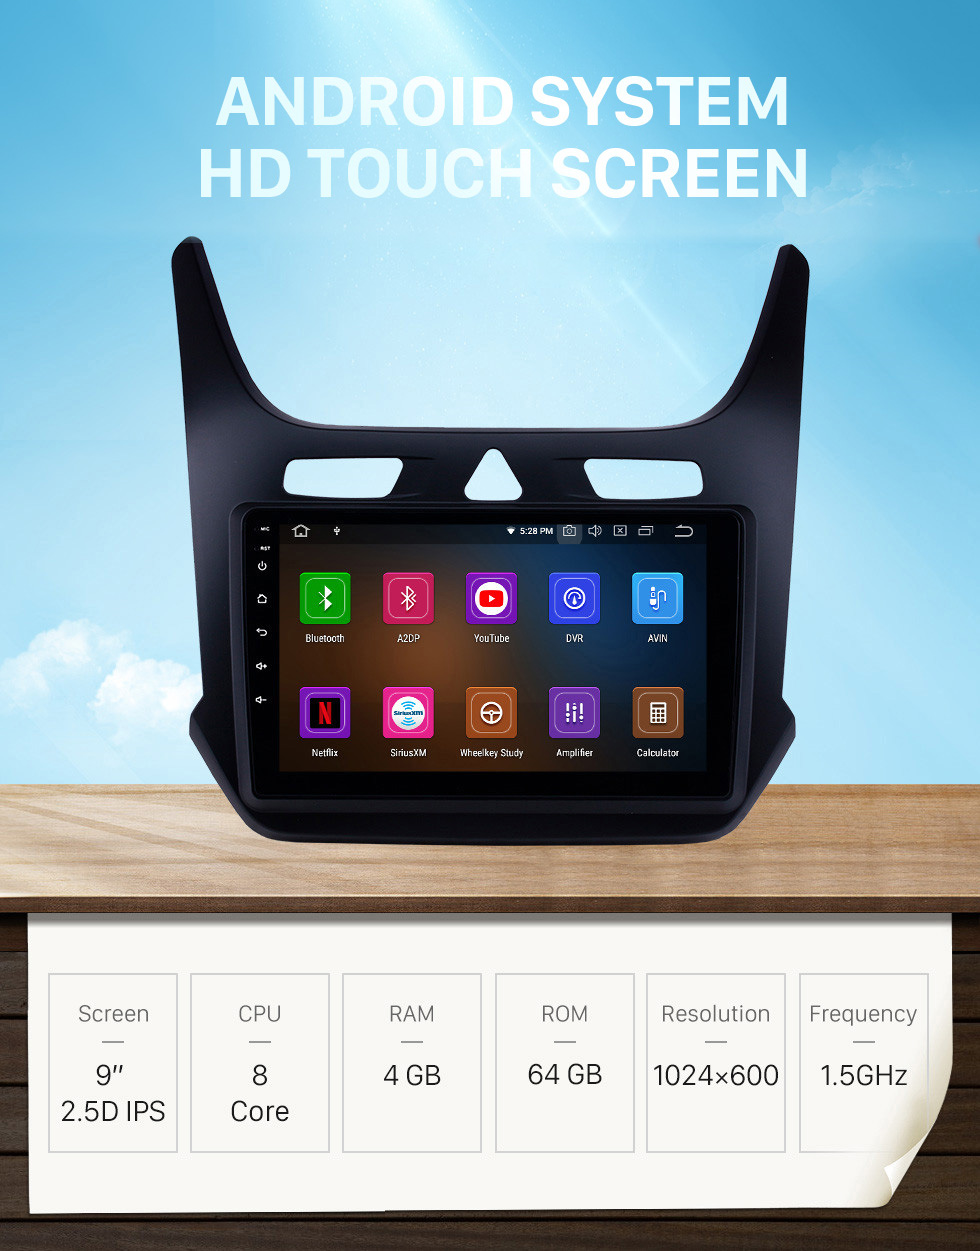 Seicane HD Touchscreen 9 inch Android 10.0 GPS Navigation Stereo for 2016-2018 chevy Chevrolet Cobalt with Bluetooth wifi Carplay support DVR DAB+ Digital TV